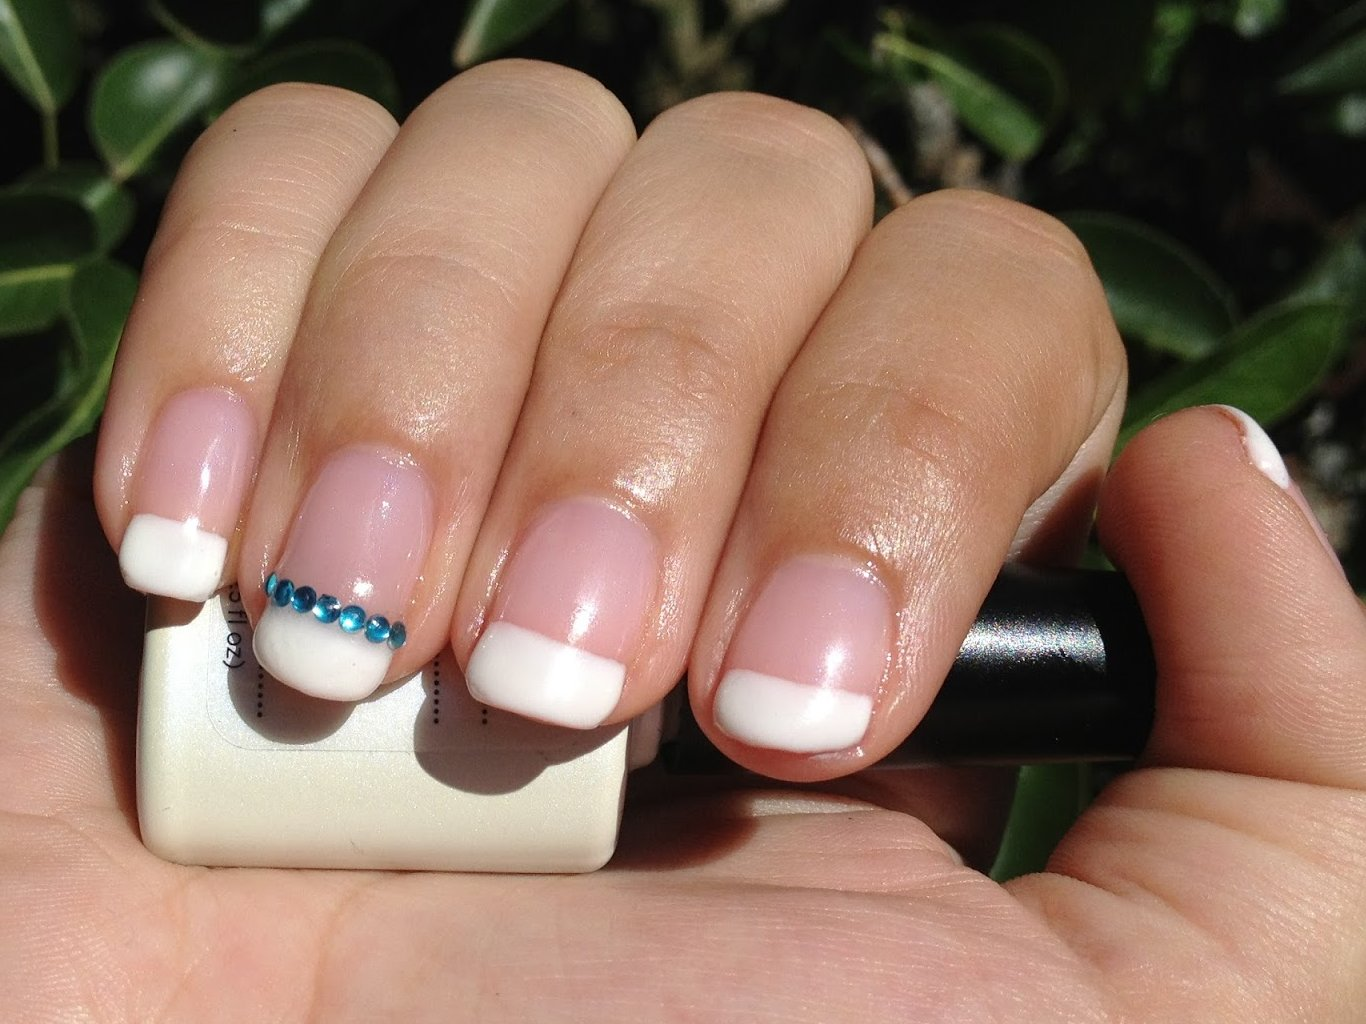 Do it yourself shellac french manicure splendid wedding company do it yourself shellac french manicure solutioingenieria Choice Image